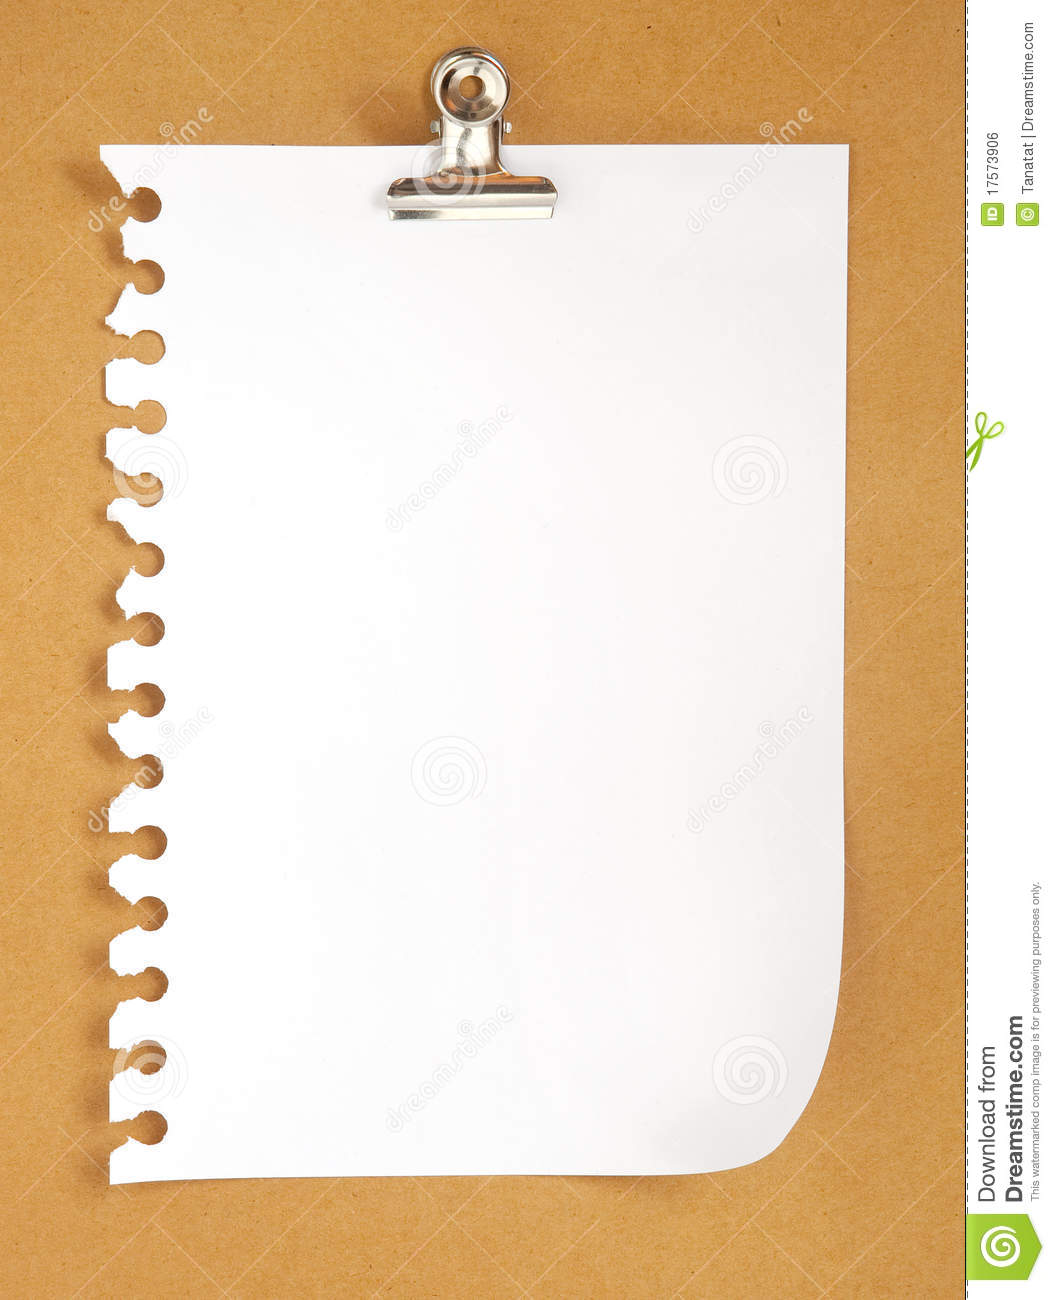 Blank Note Paper On Cardboard Background Royalty Free